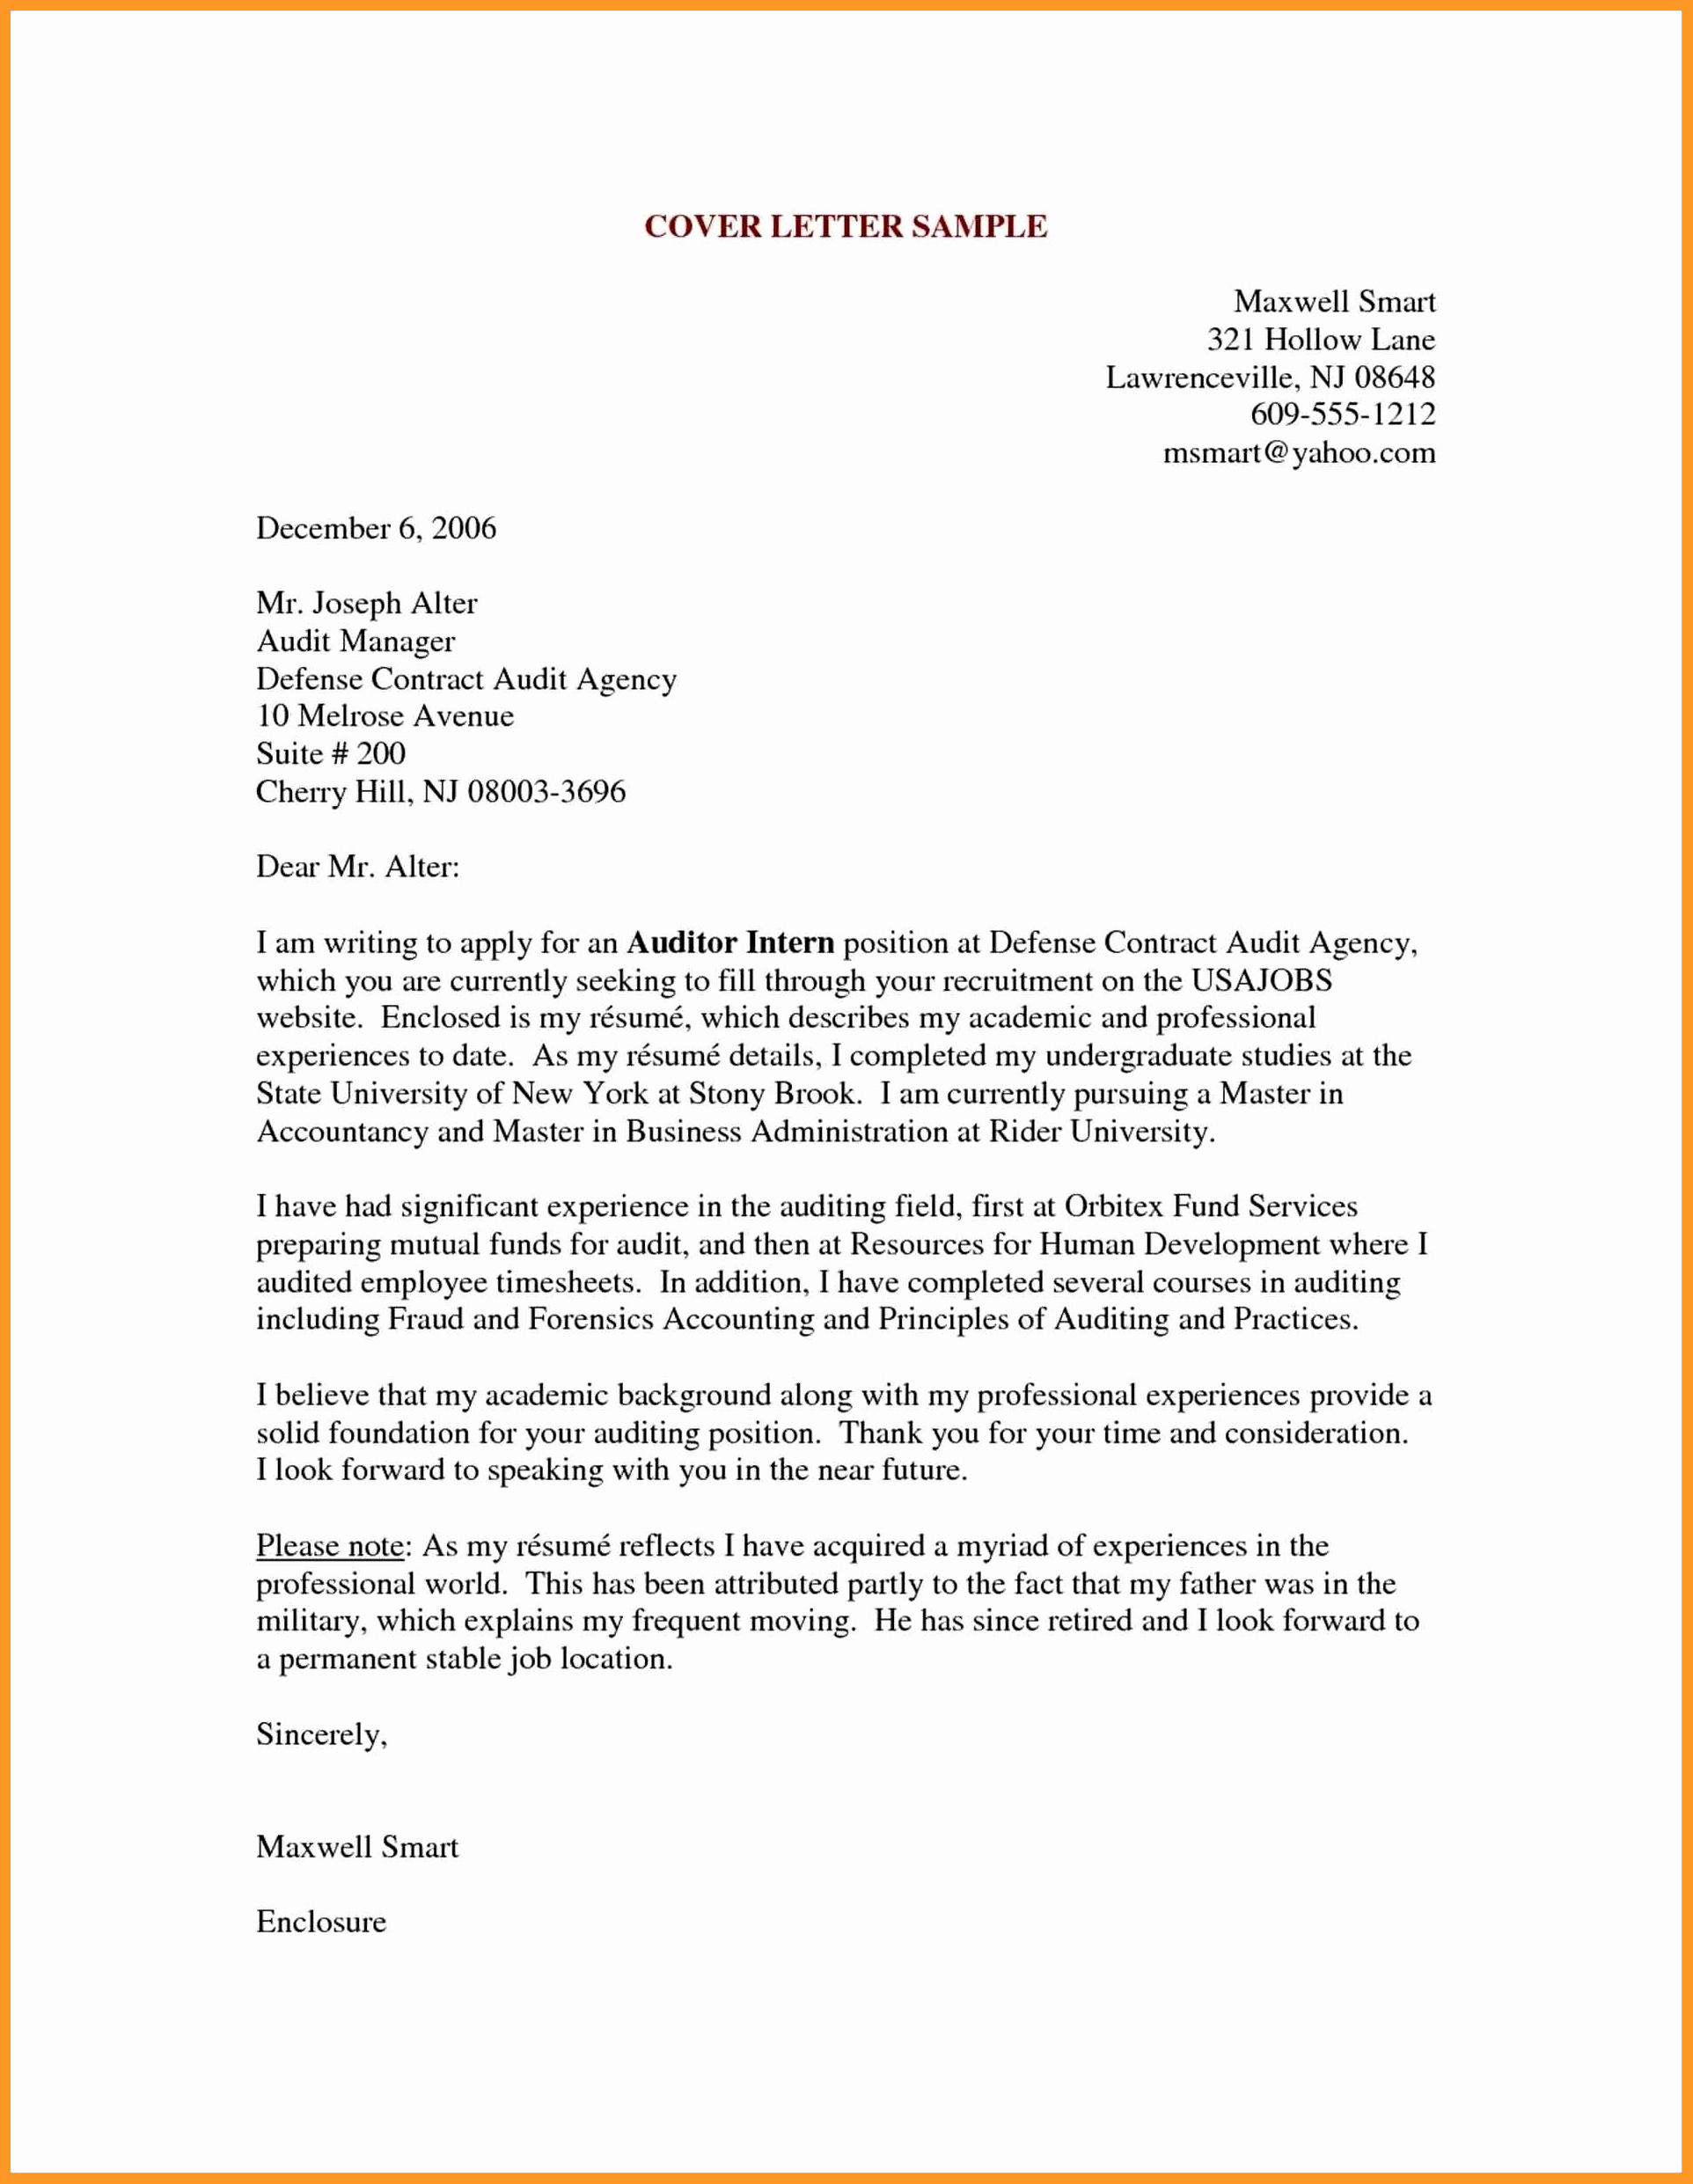 Cover Letter for Accounting Position Beautiful 12 13 Accounting Manager Cover Letter Samples